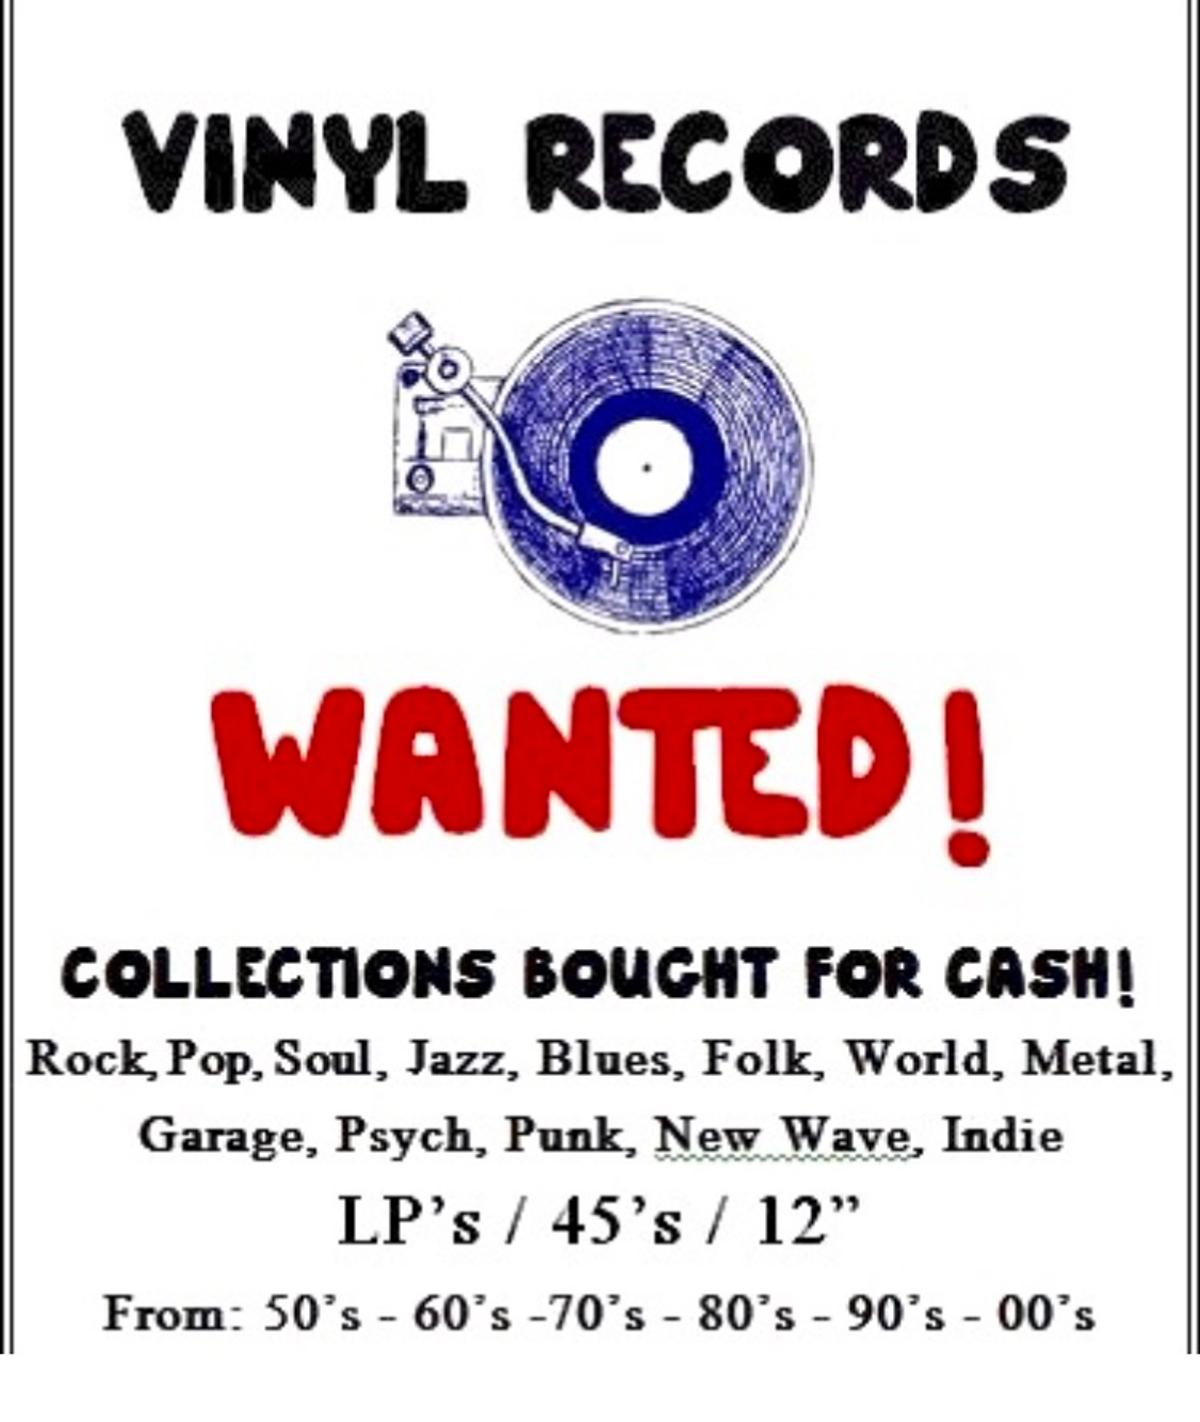 WANTED VINYL RECORD COLLECTIONS